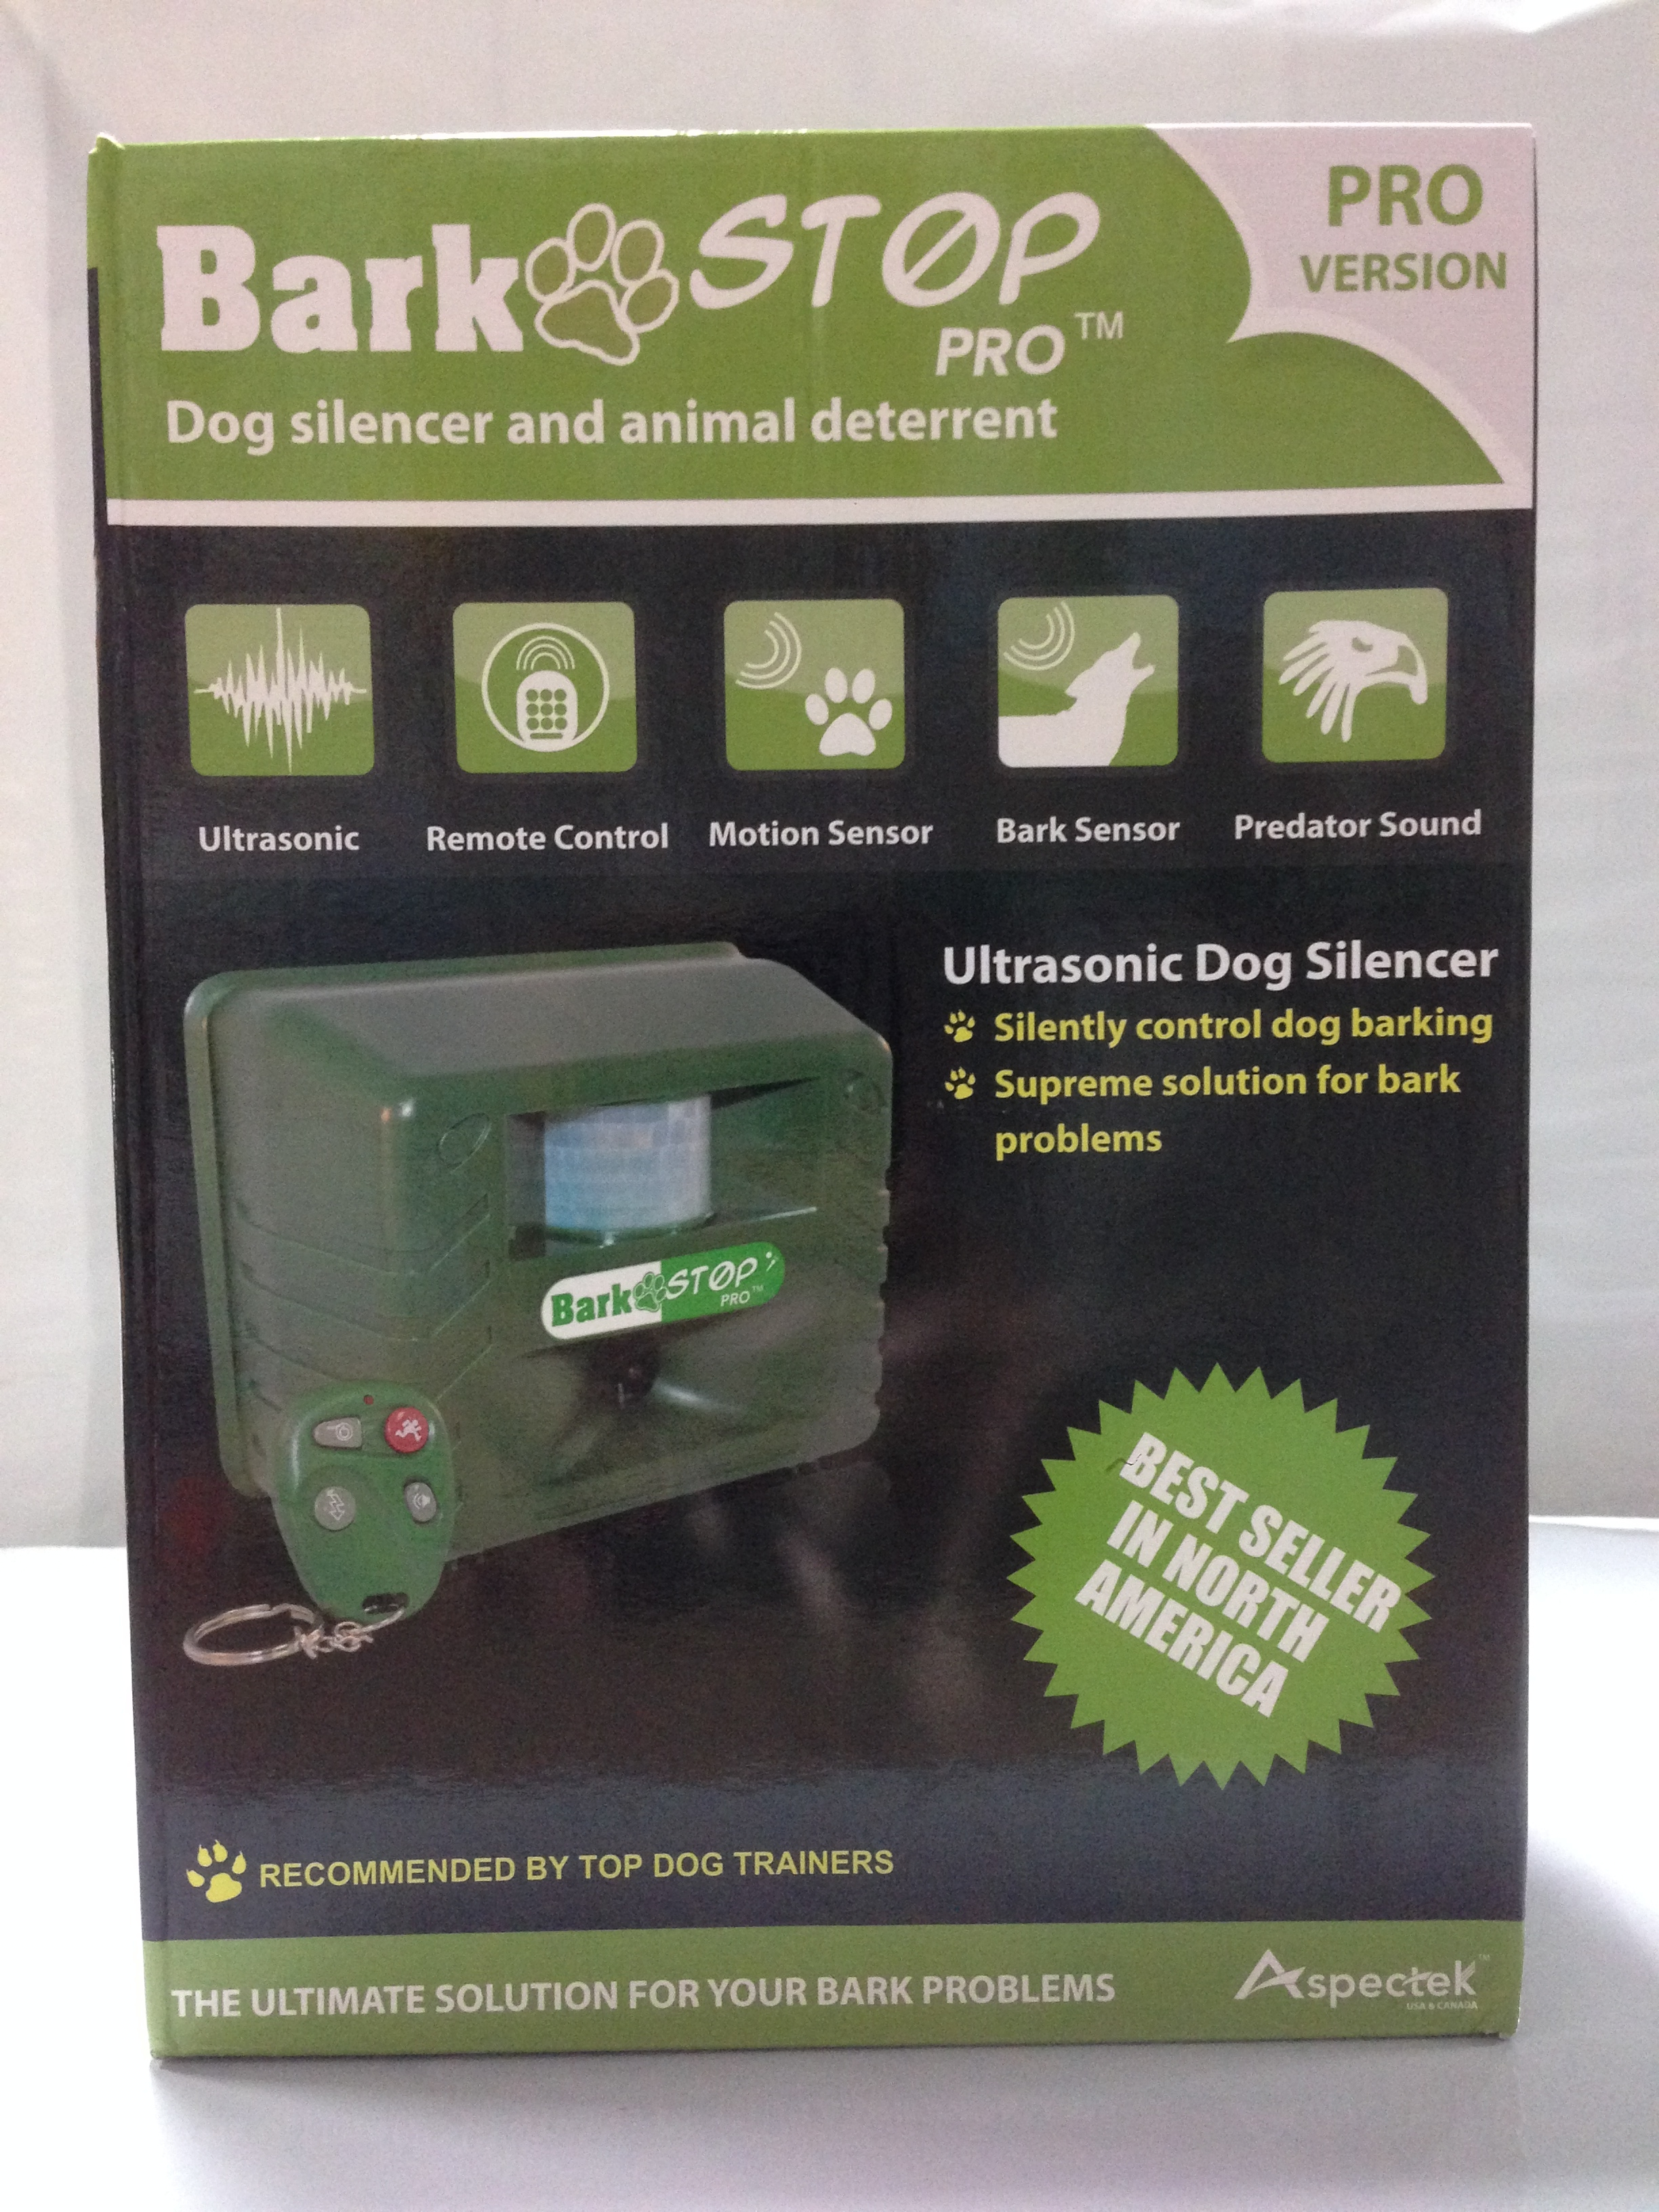 Bark prevention devices